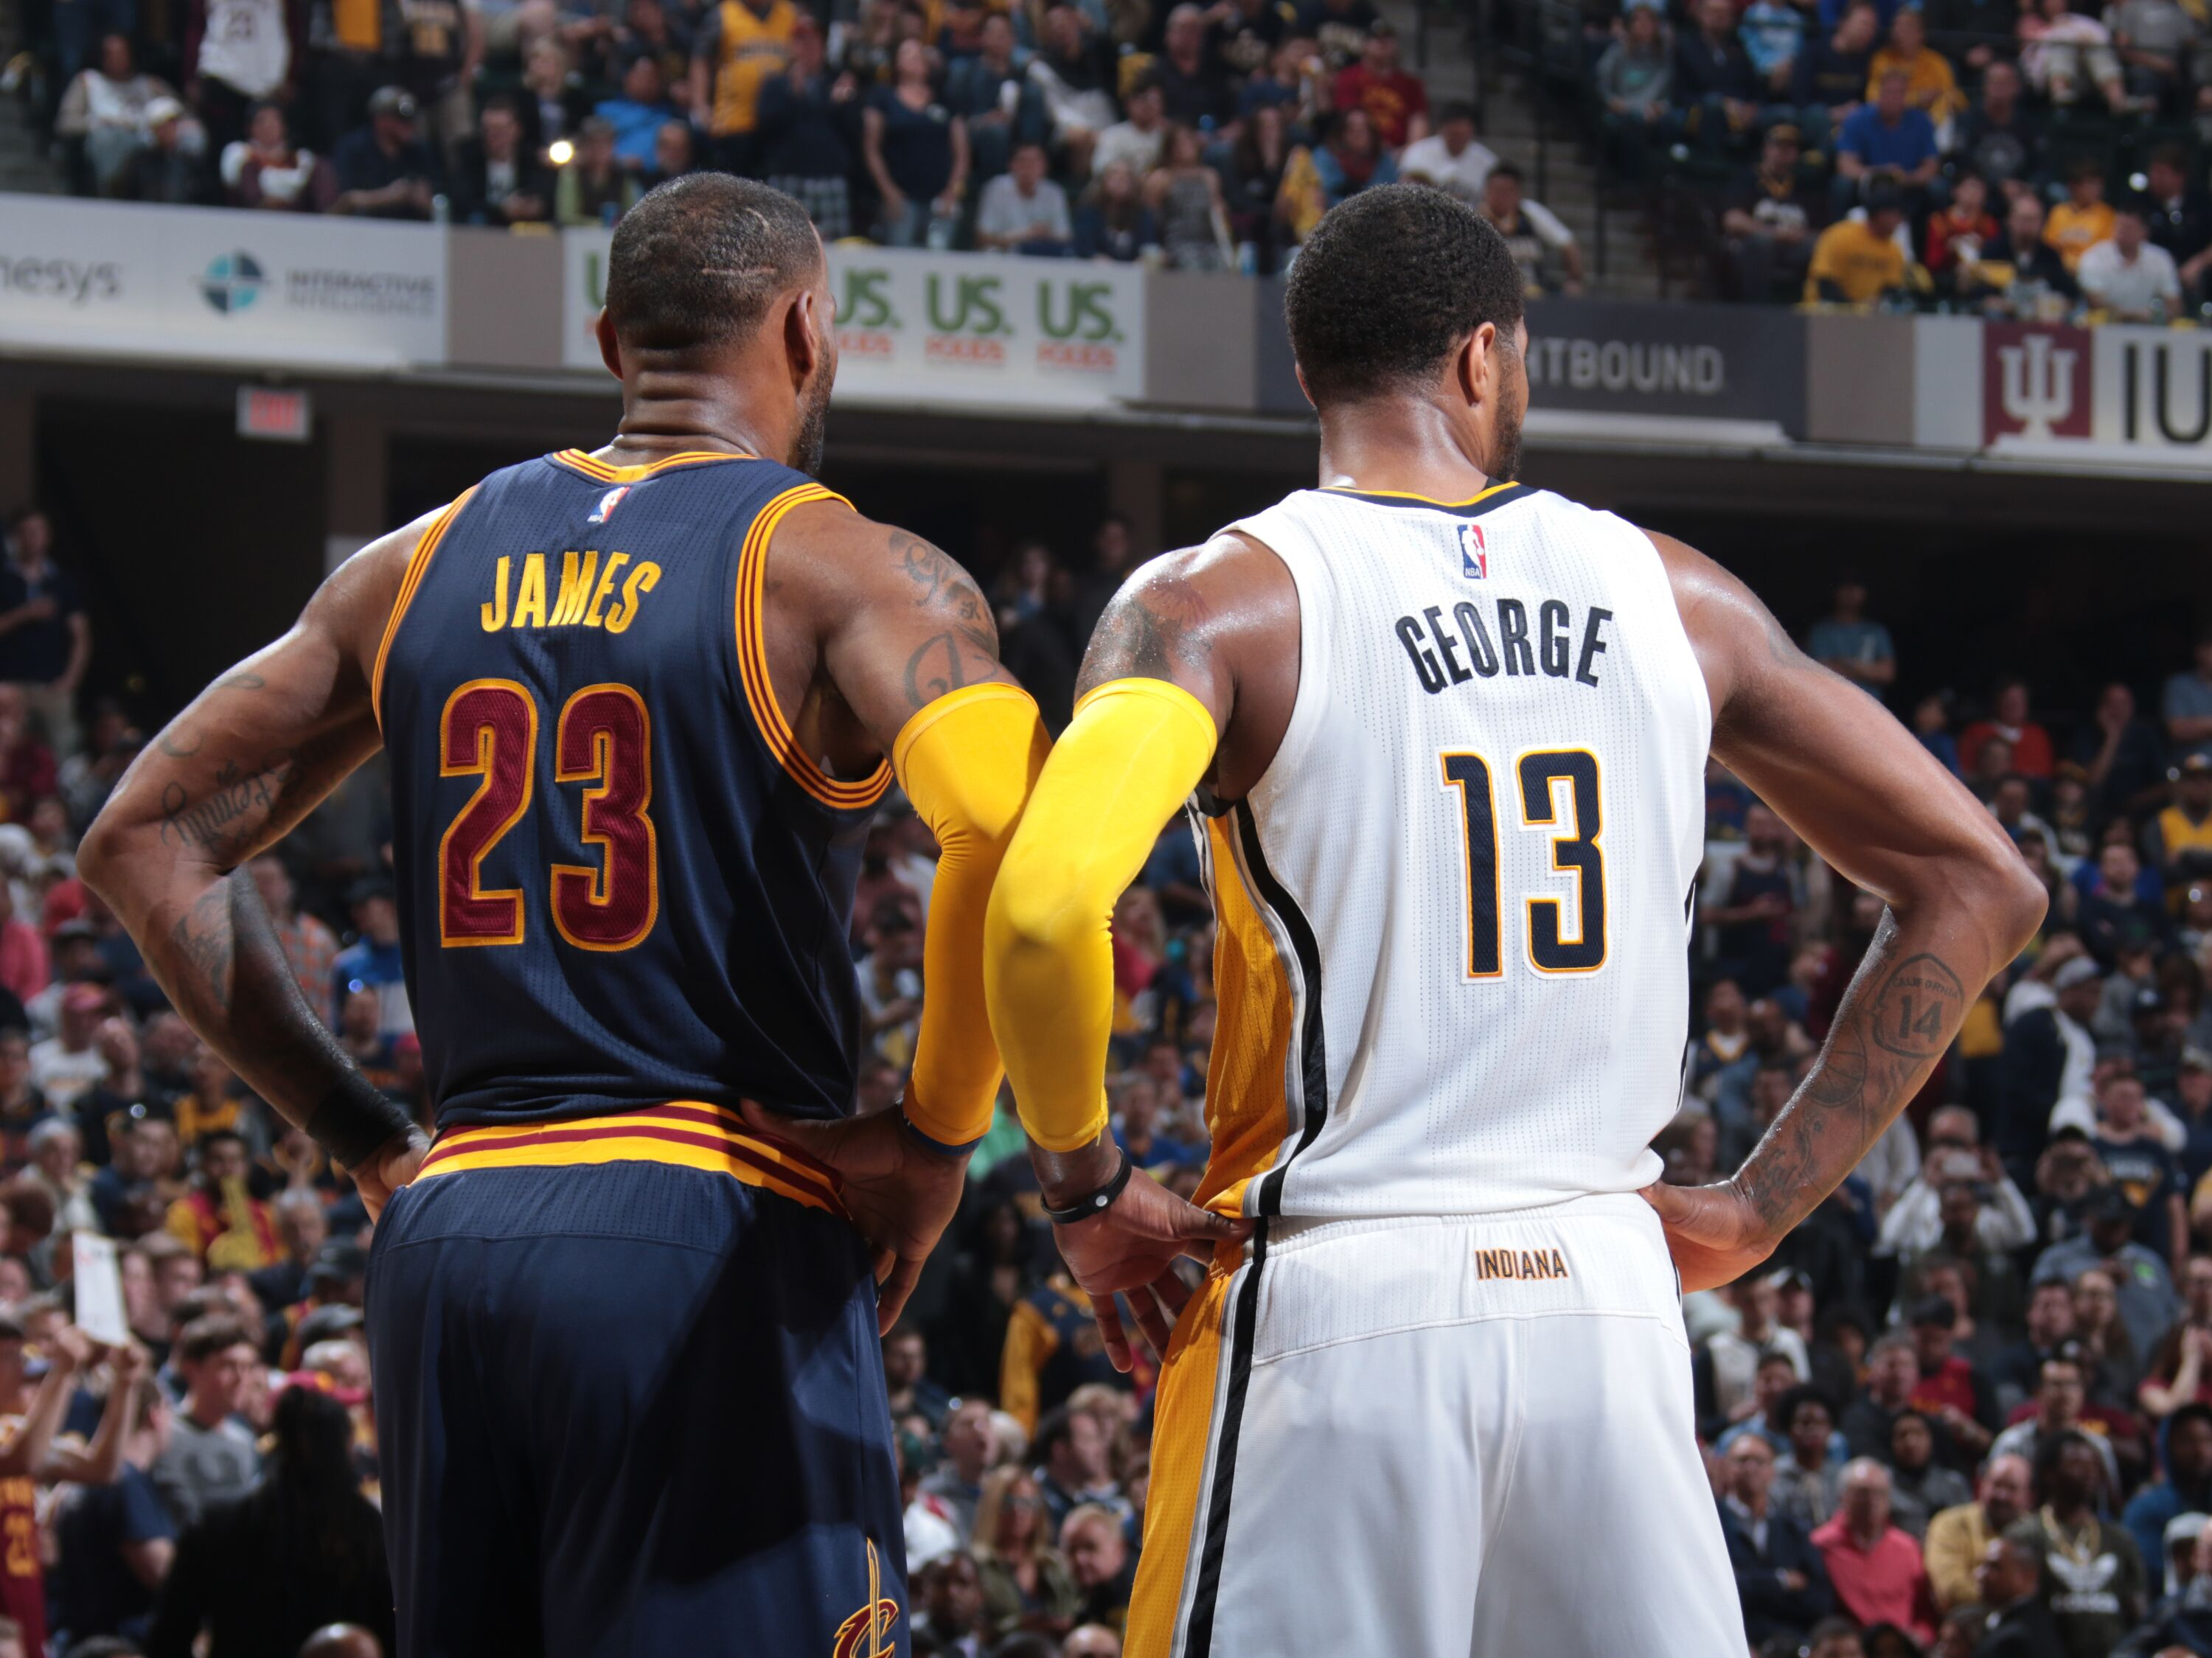 671967226-cleveland-cavaliers-v-indiana-pacers-game-four.jpg